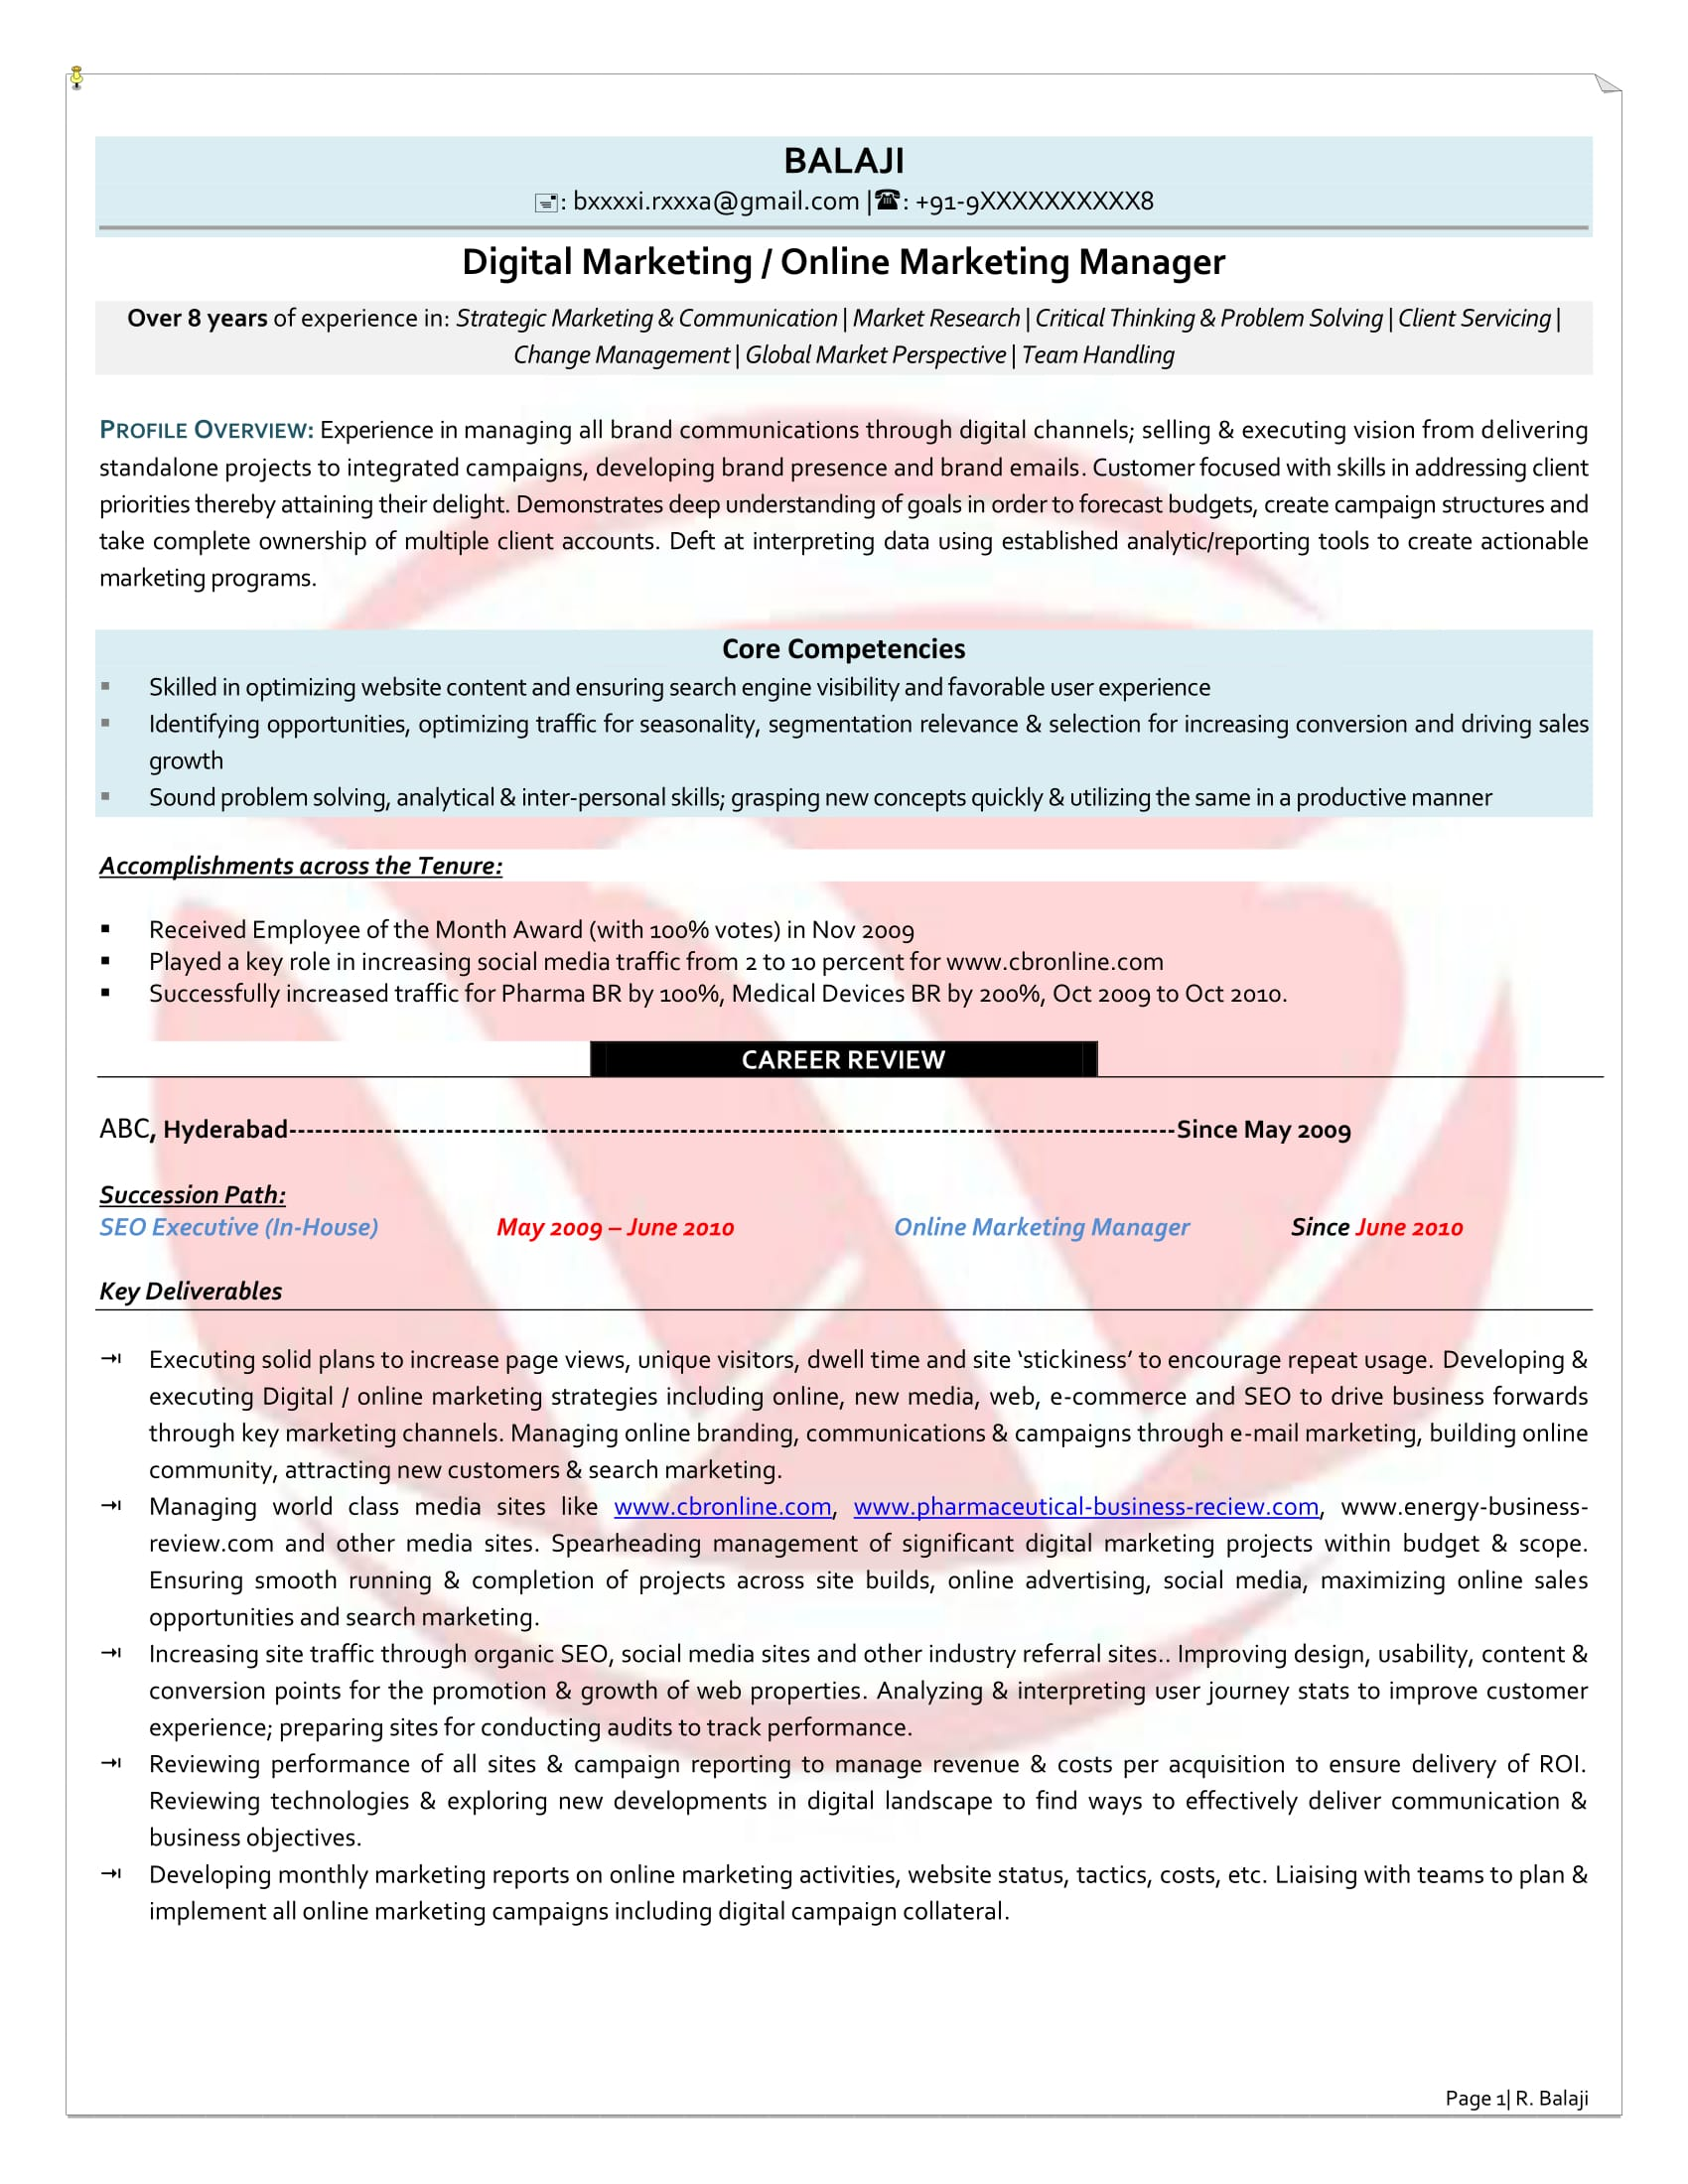 Digital Marketing Sample Resume  Sample Marketing Resumes